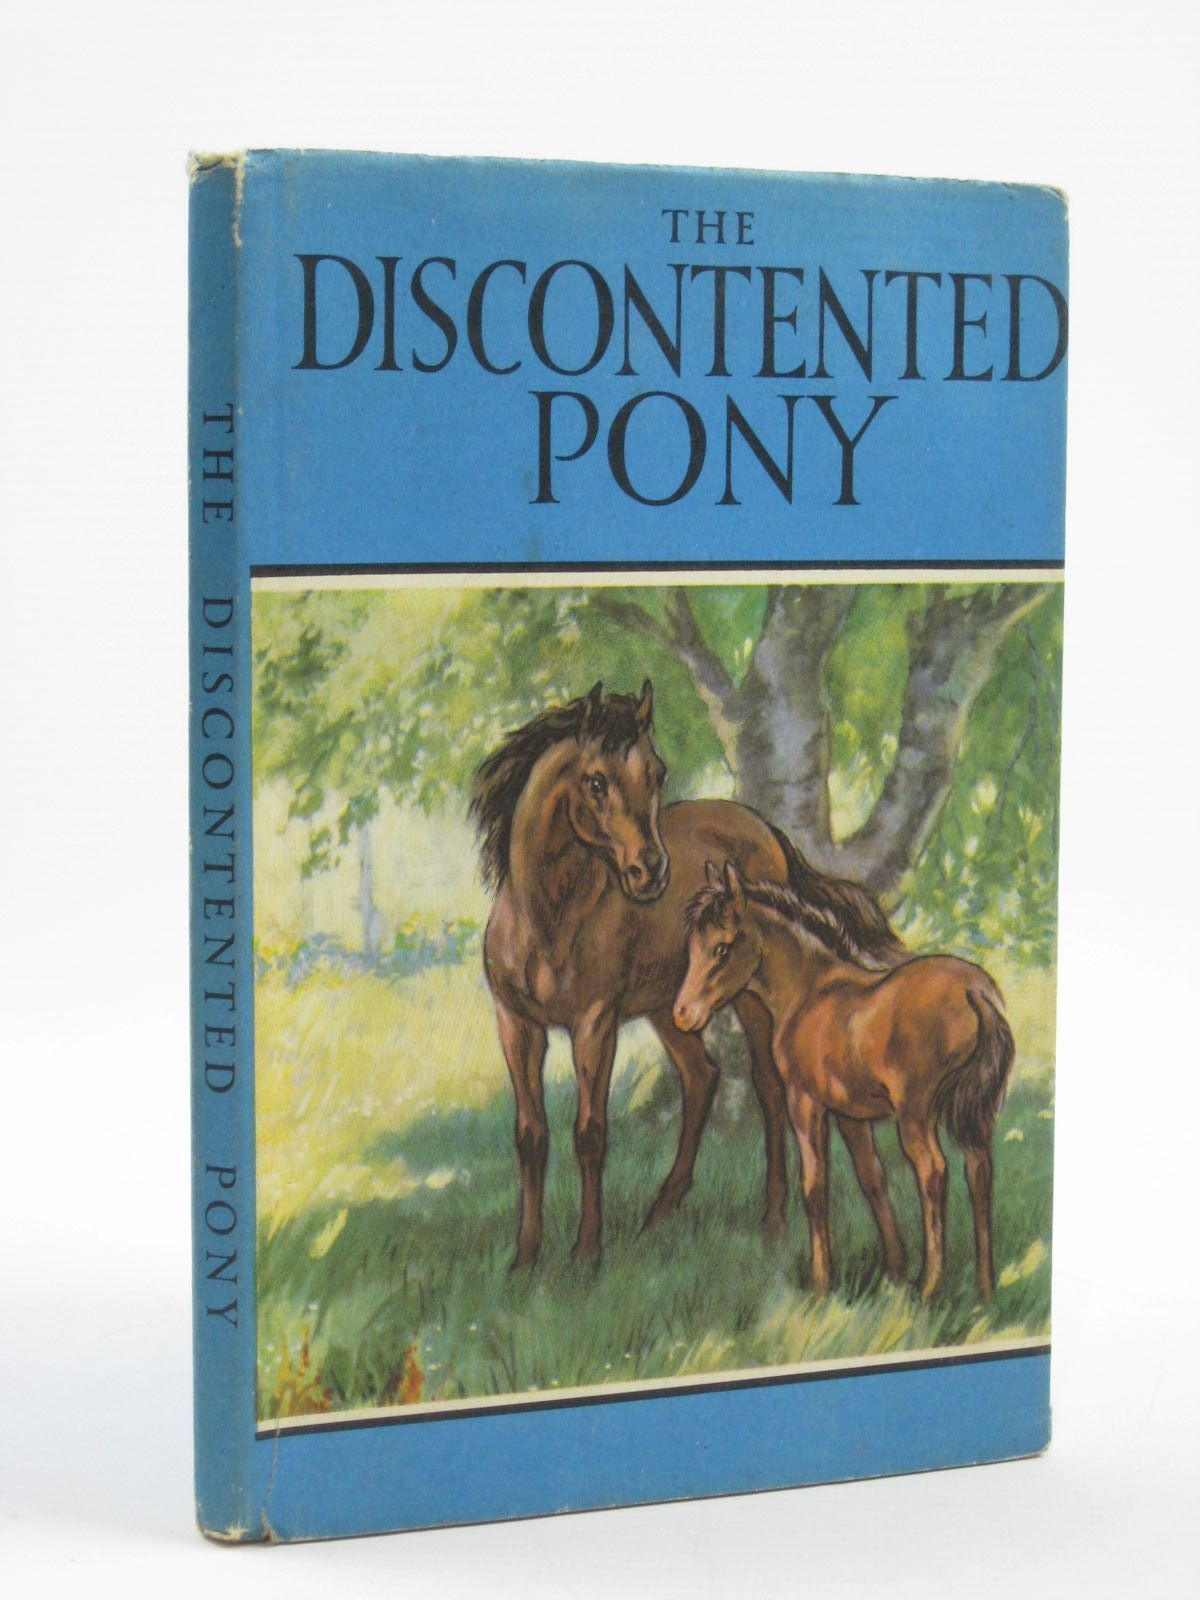 Photo of THE DISCONTENTED PONY written by Barr, Noel illustrated by Hickling, P.B. published by Wills & Hepworth Ltd. (STOCK CODE: 1406590)  for sale by Stella & Rose's Books